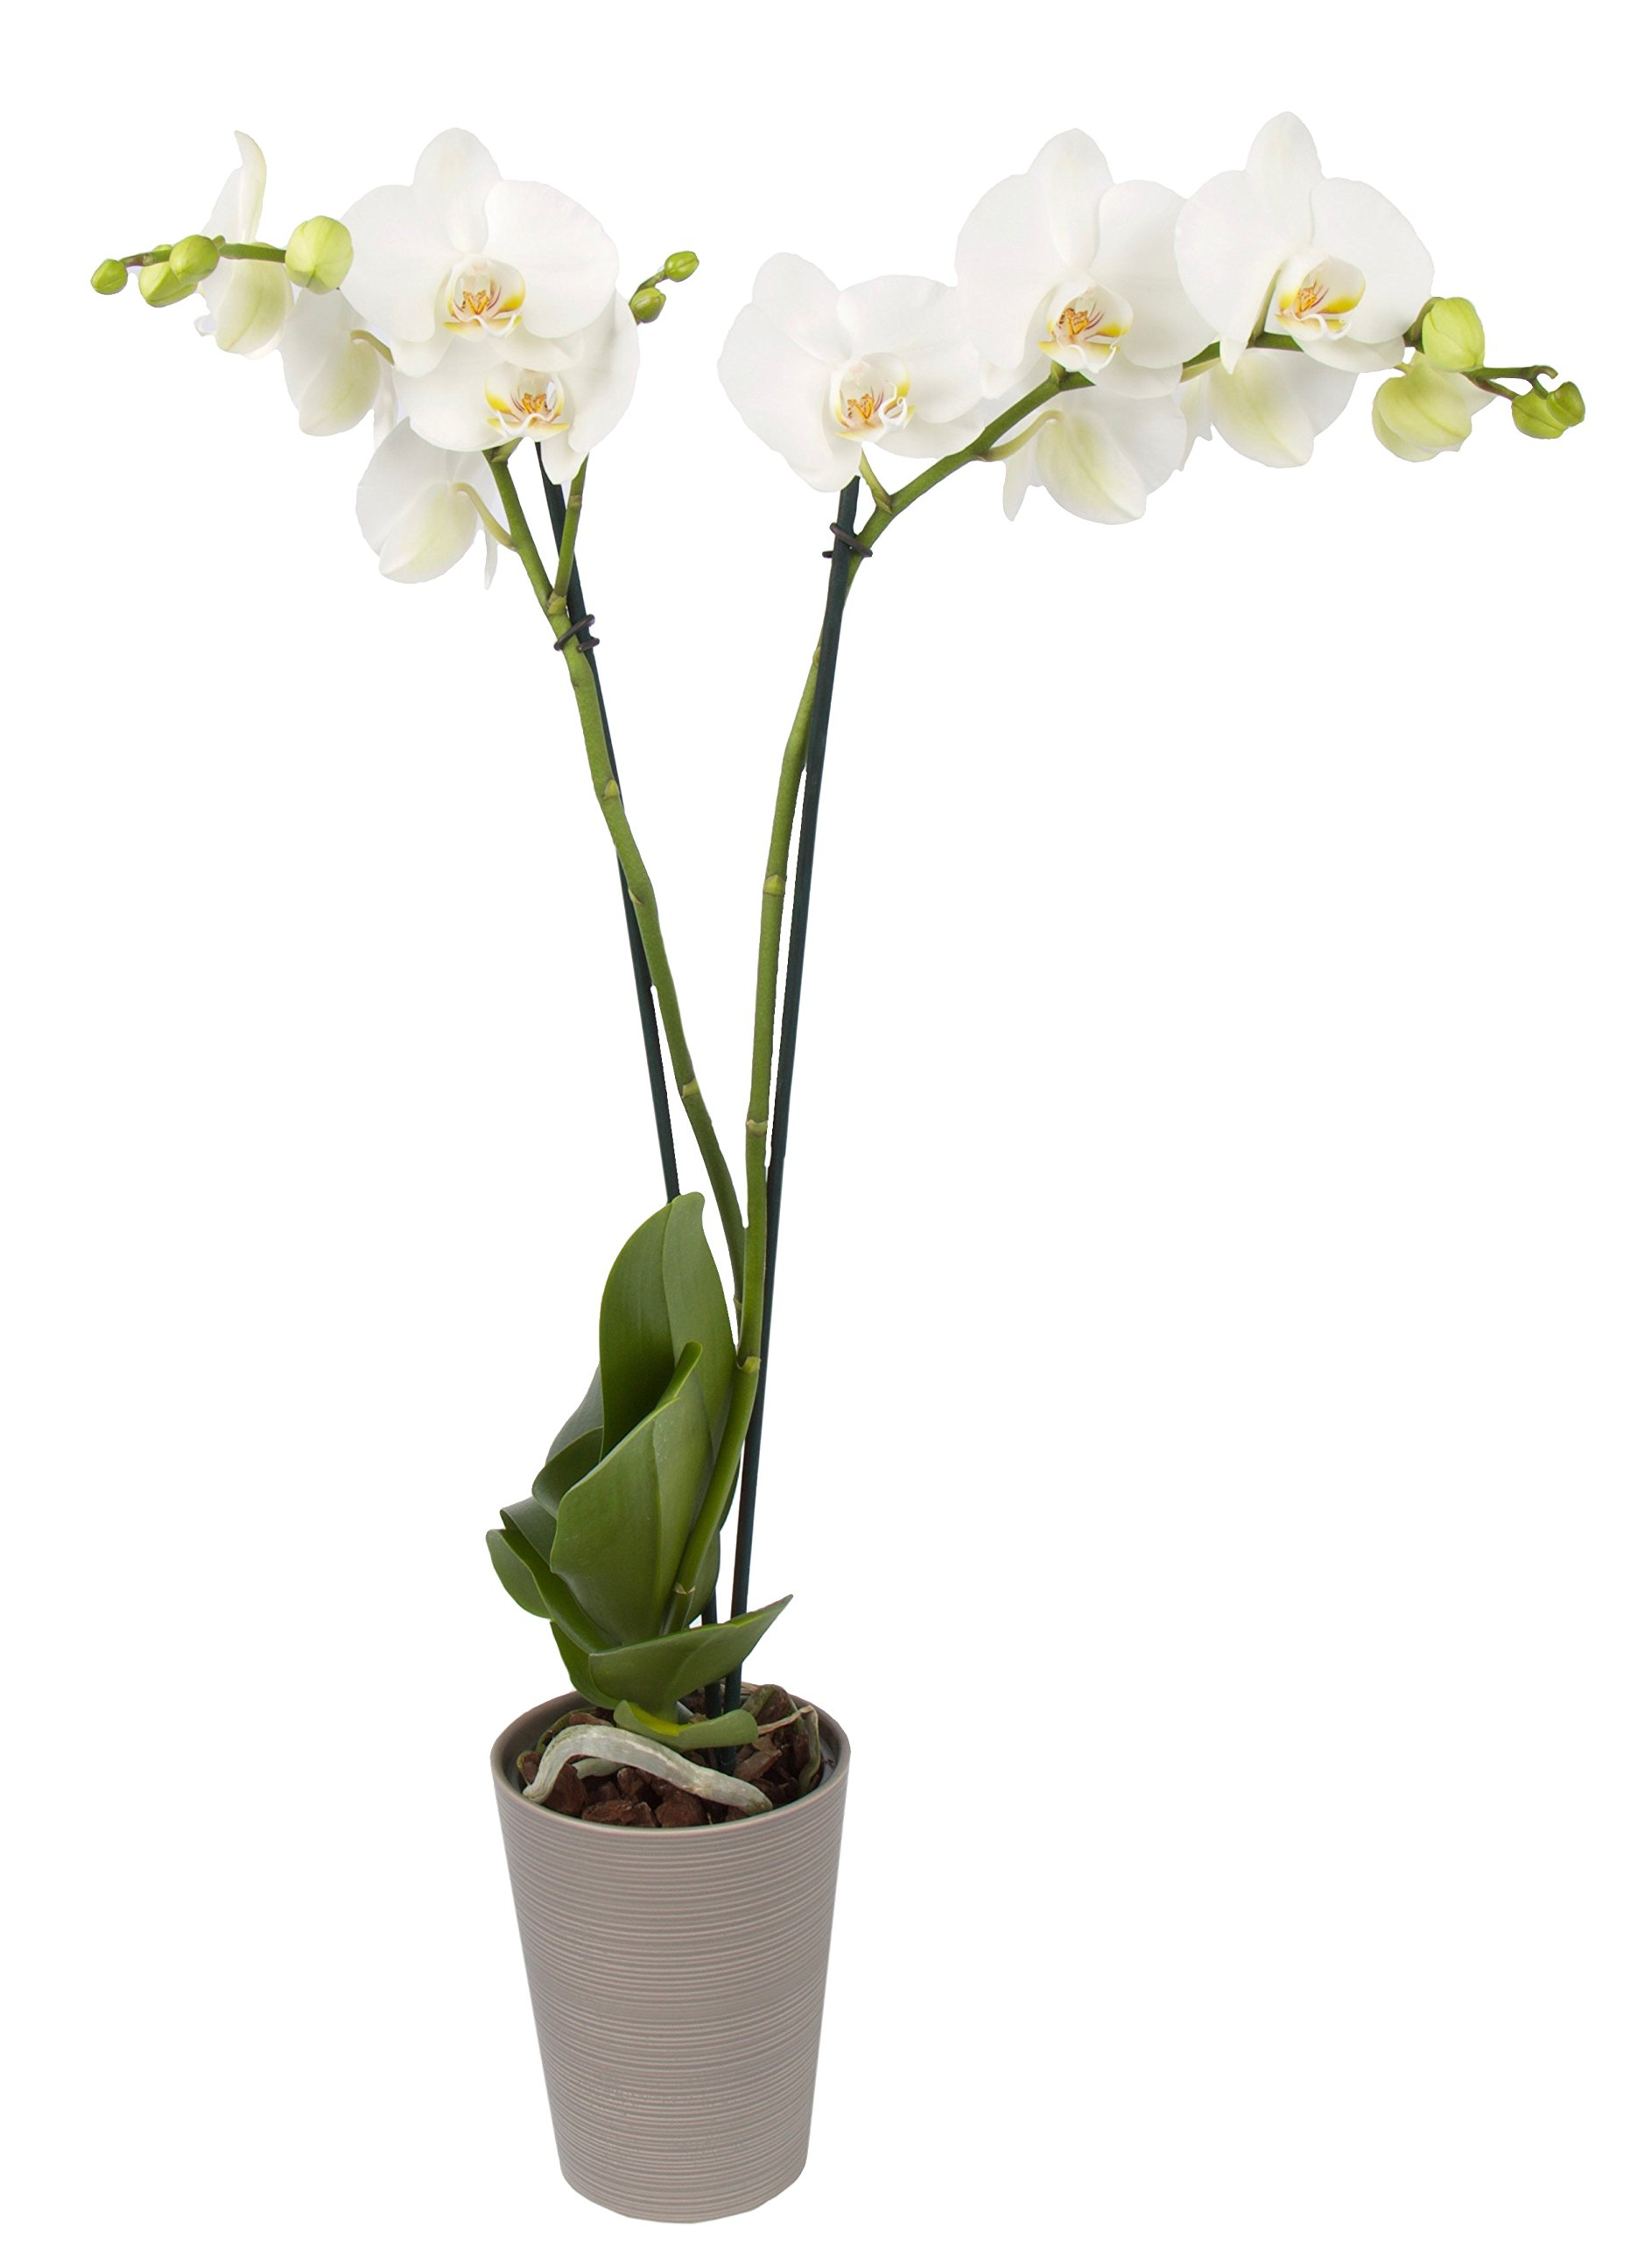 Color Orchids AMZ1101DGY2W Live Blooming Double Stem Orchid Plant in Ceramic Pot, 20''-24'' Tall, White Blooms